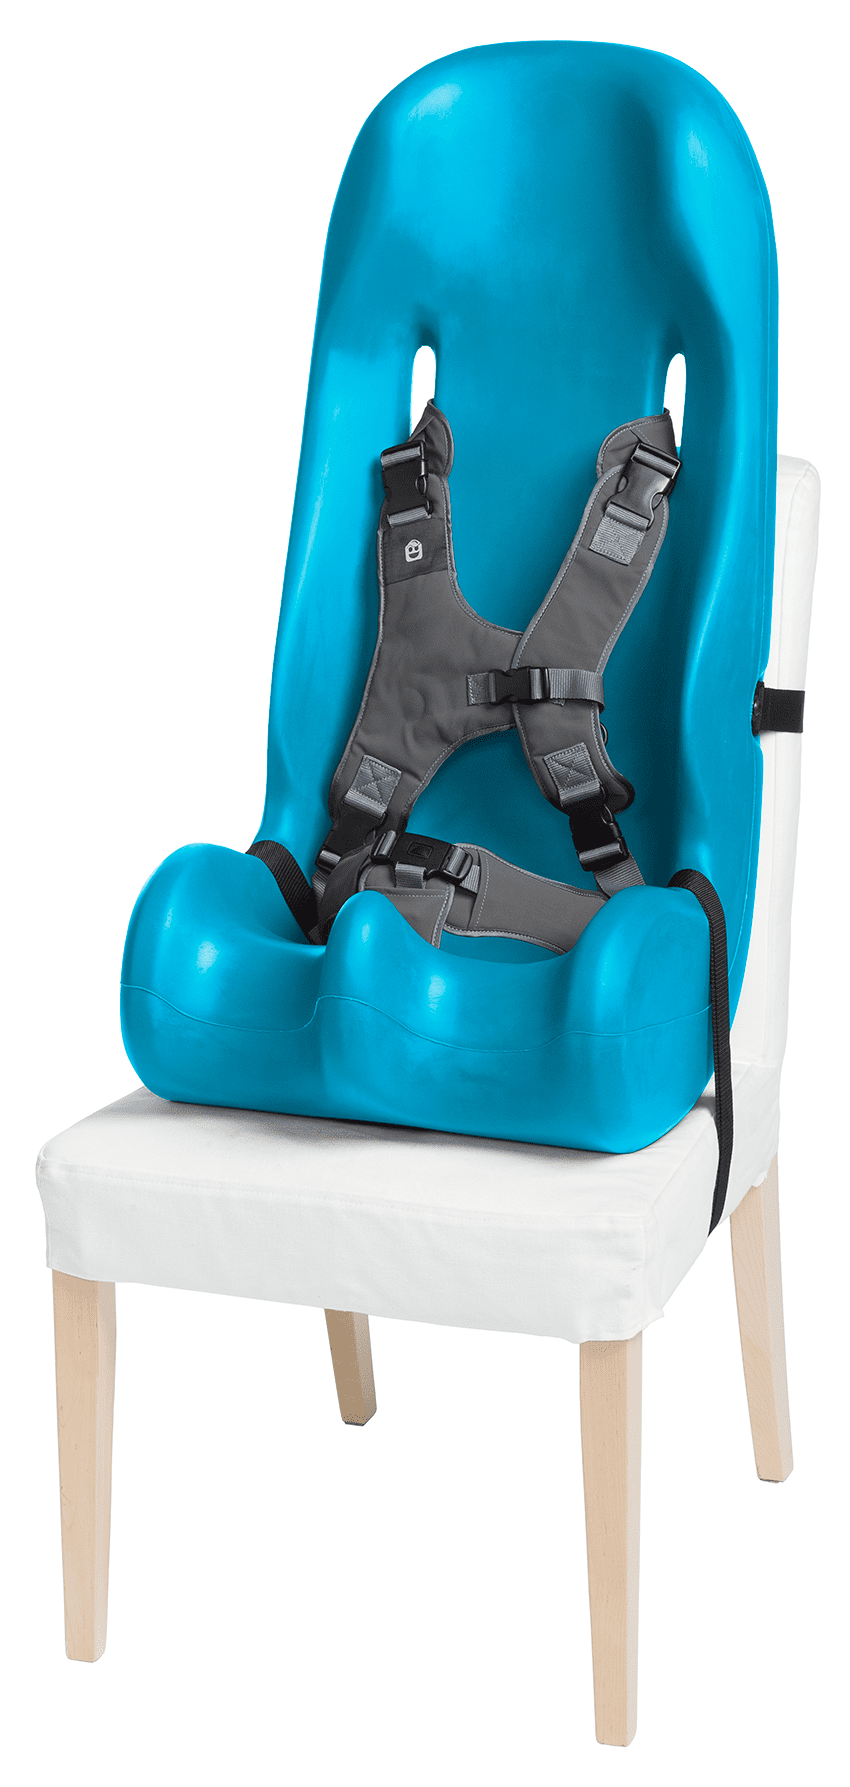 Special Tomato Soft-Touch® Sitter Only   Adaptivemall.com